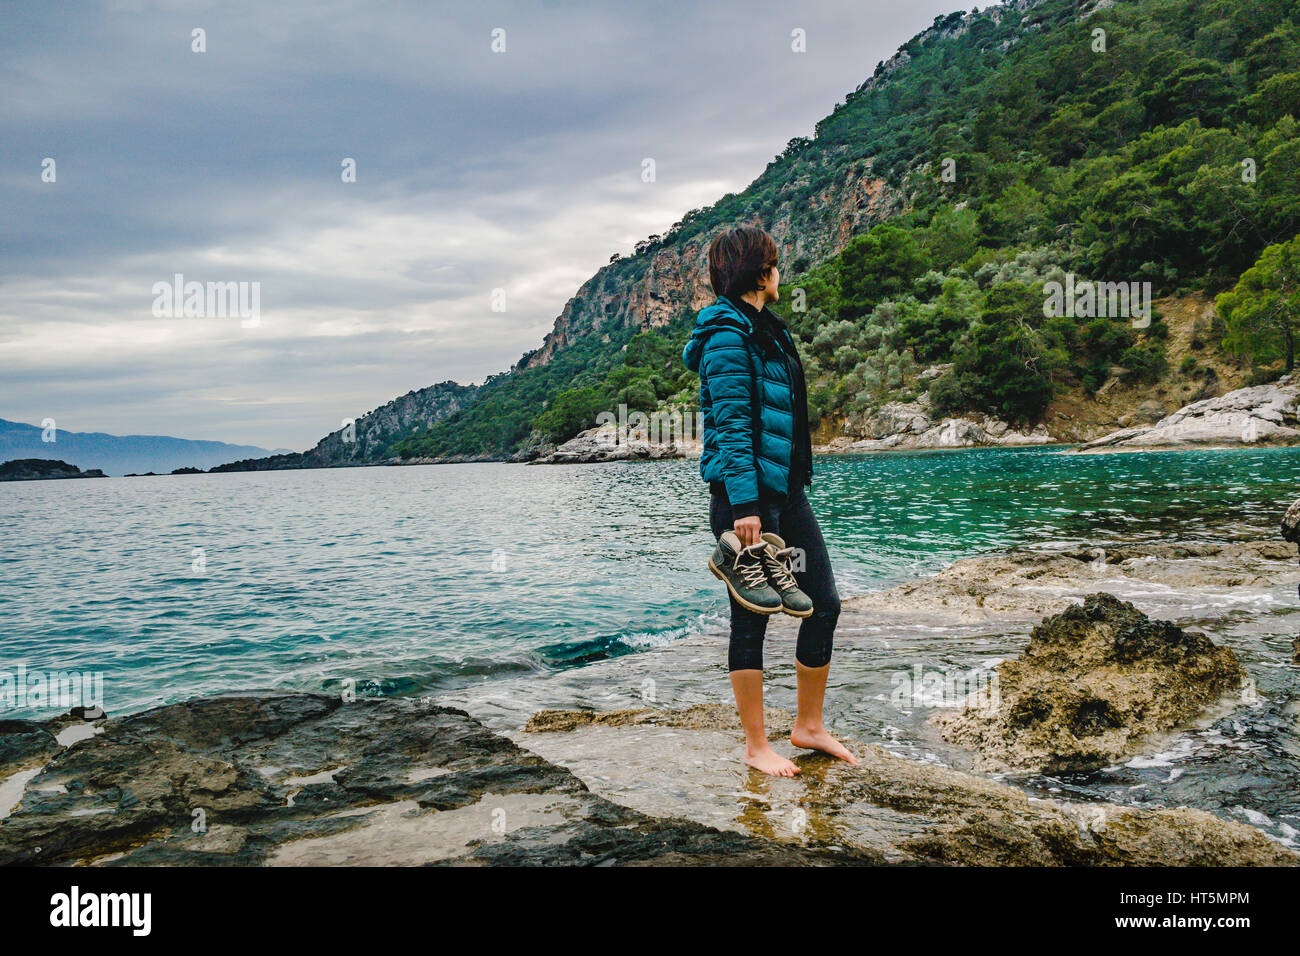 attractive fashion model girl standing on the wet rock barefoot, holding hiking boots side view - Stock Image